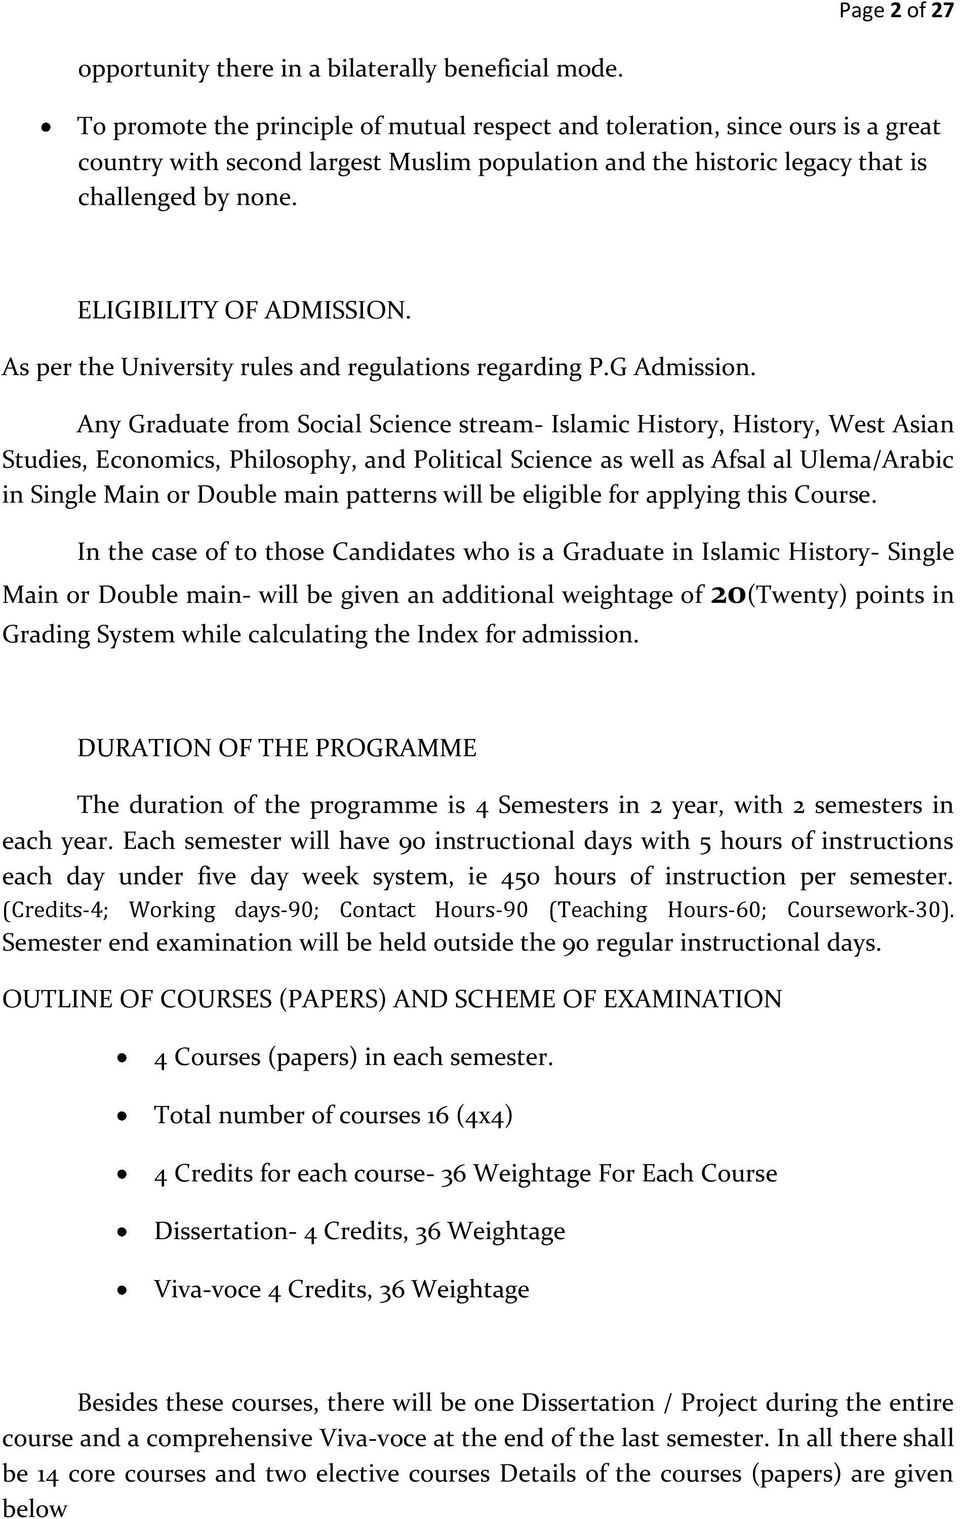 ELIGIBILITY OF ADMISSION. As per the University rules and regulations regarding P.G Admission.